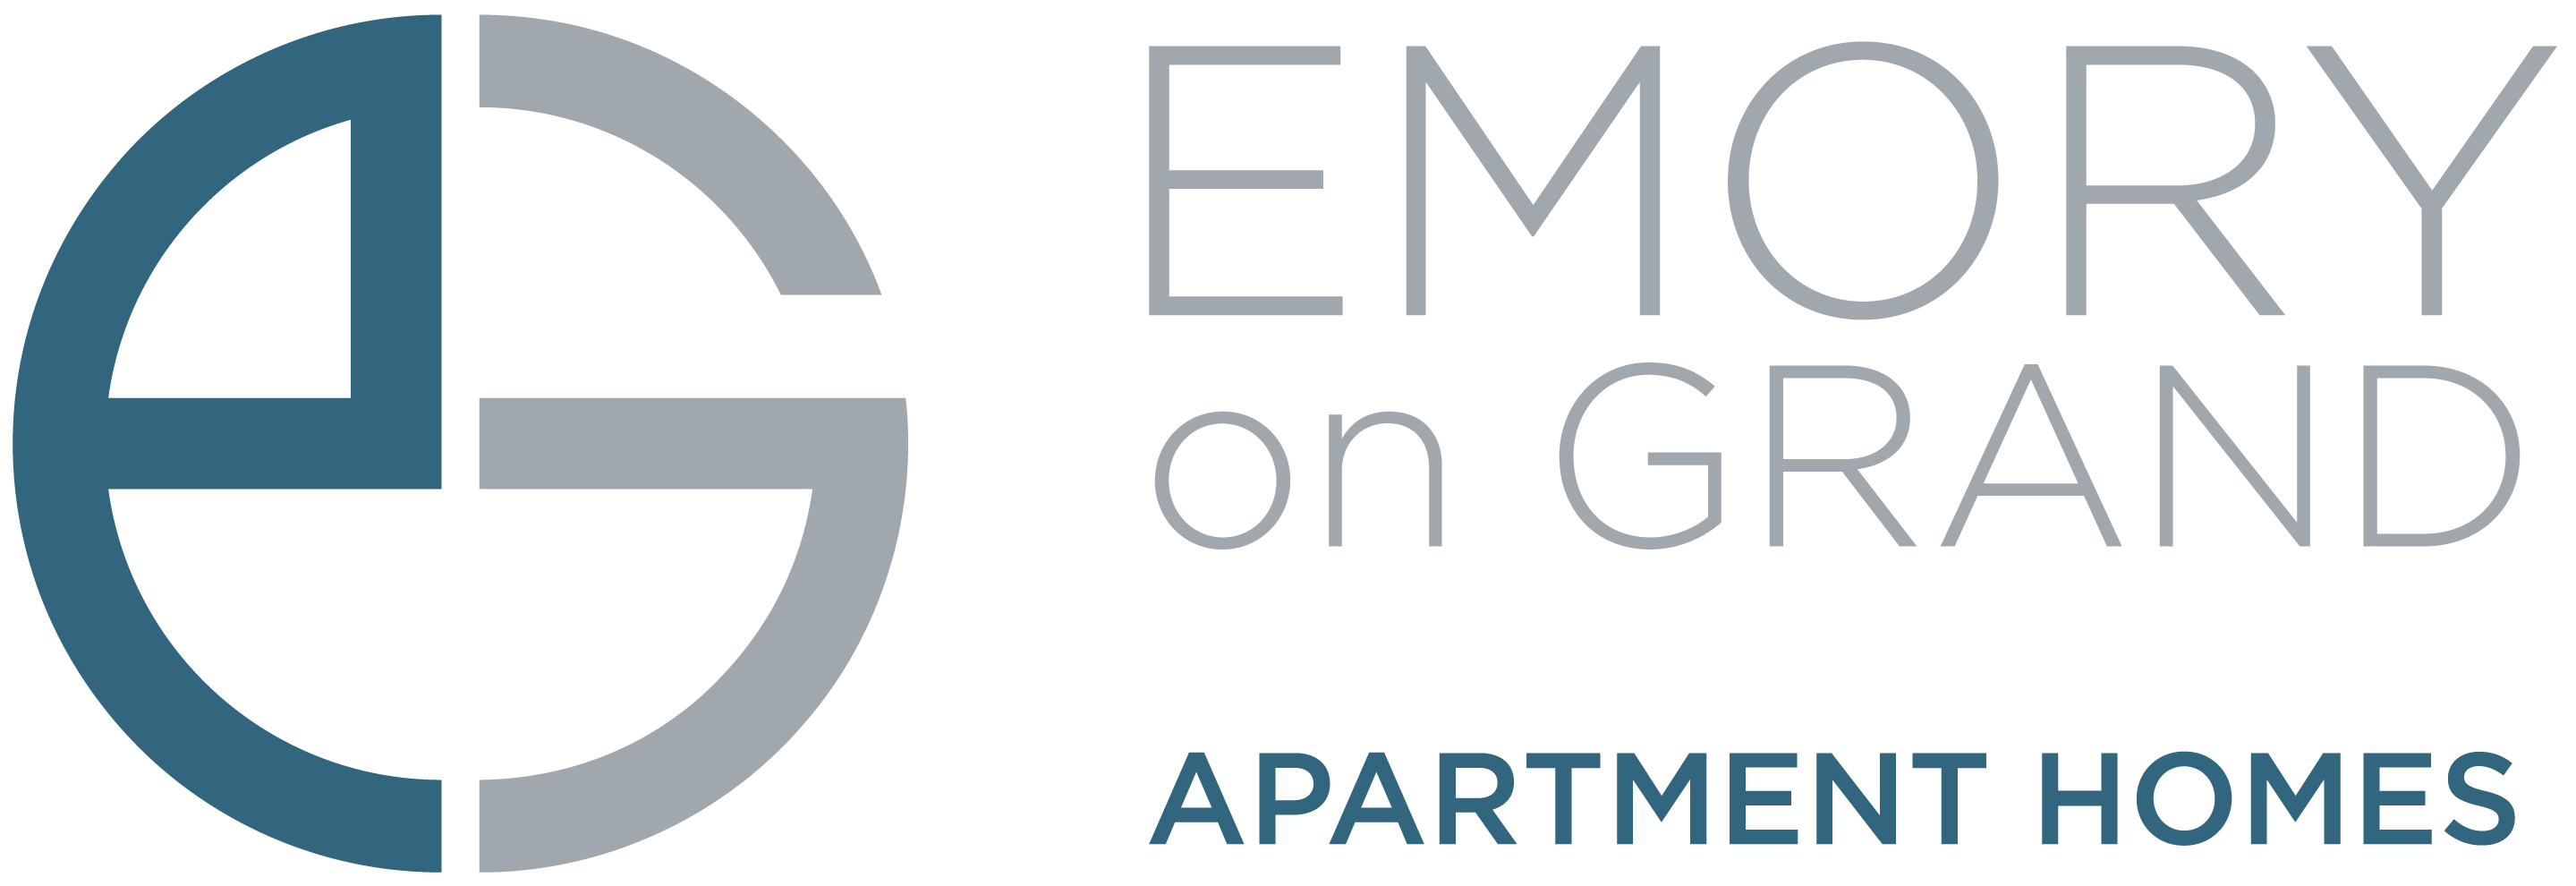 Emory on Grand Logo